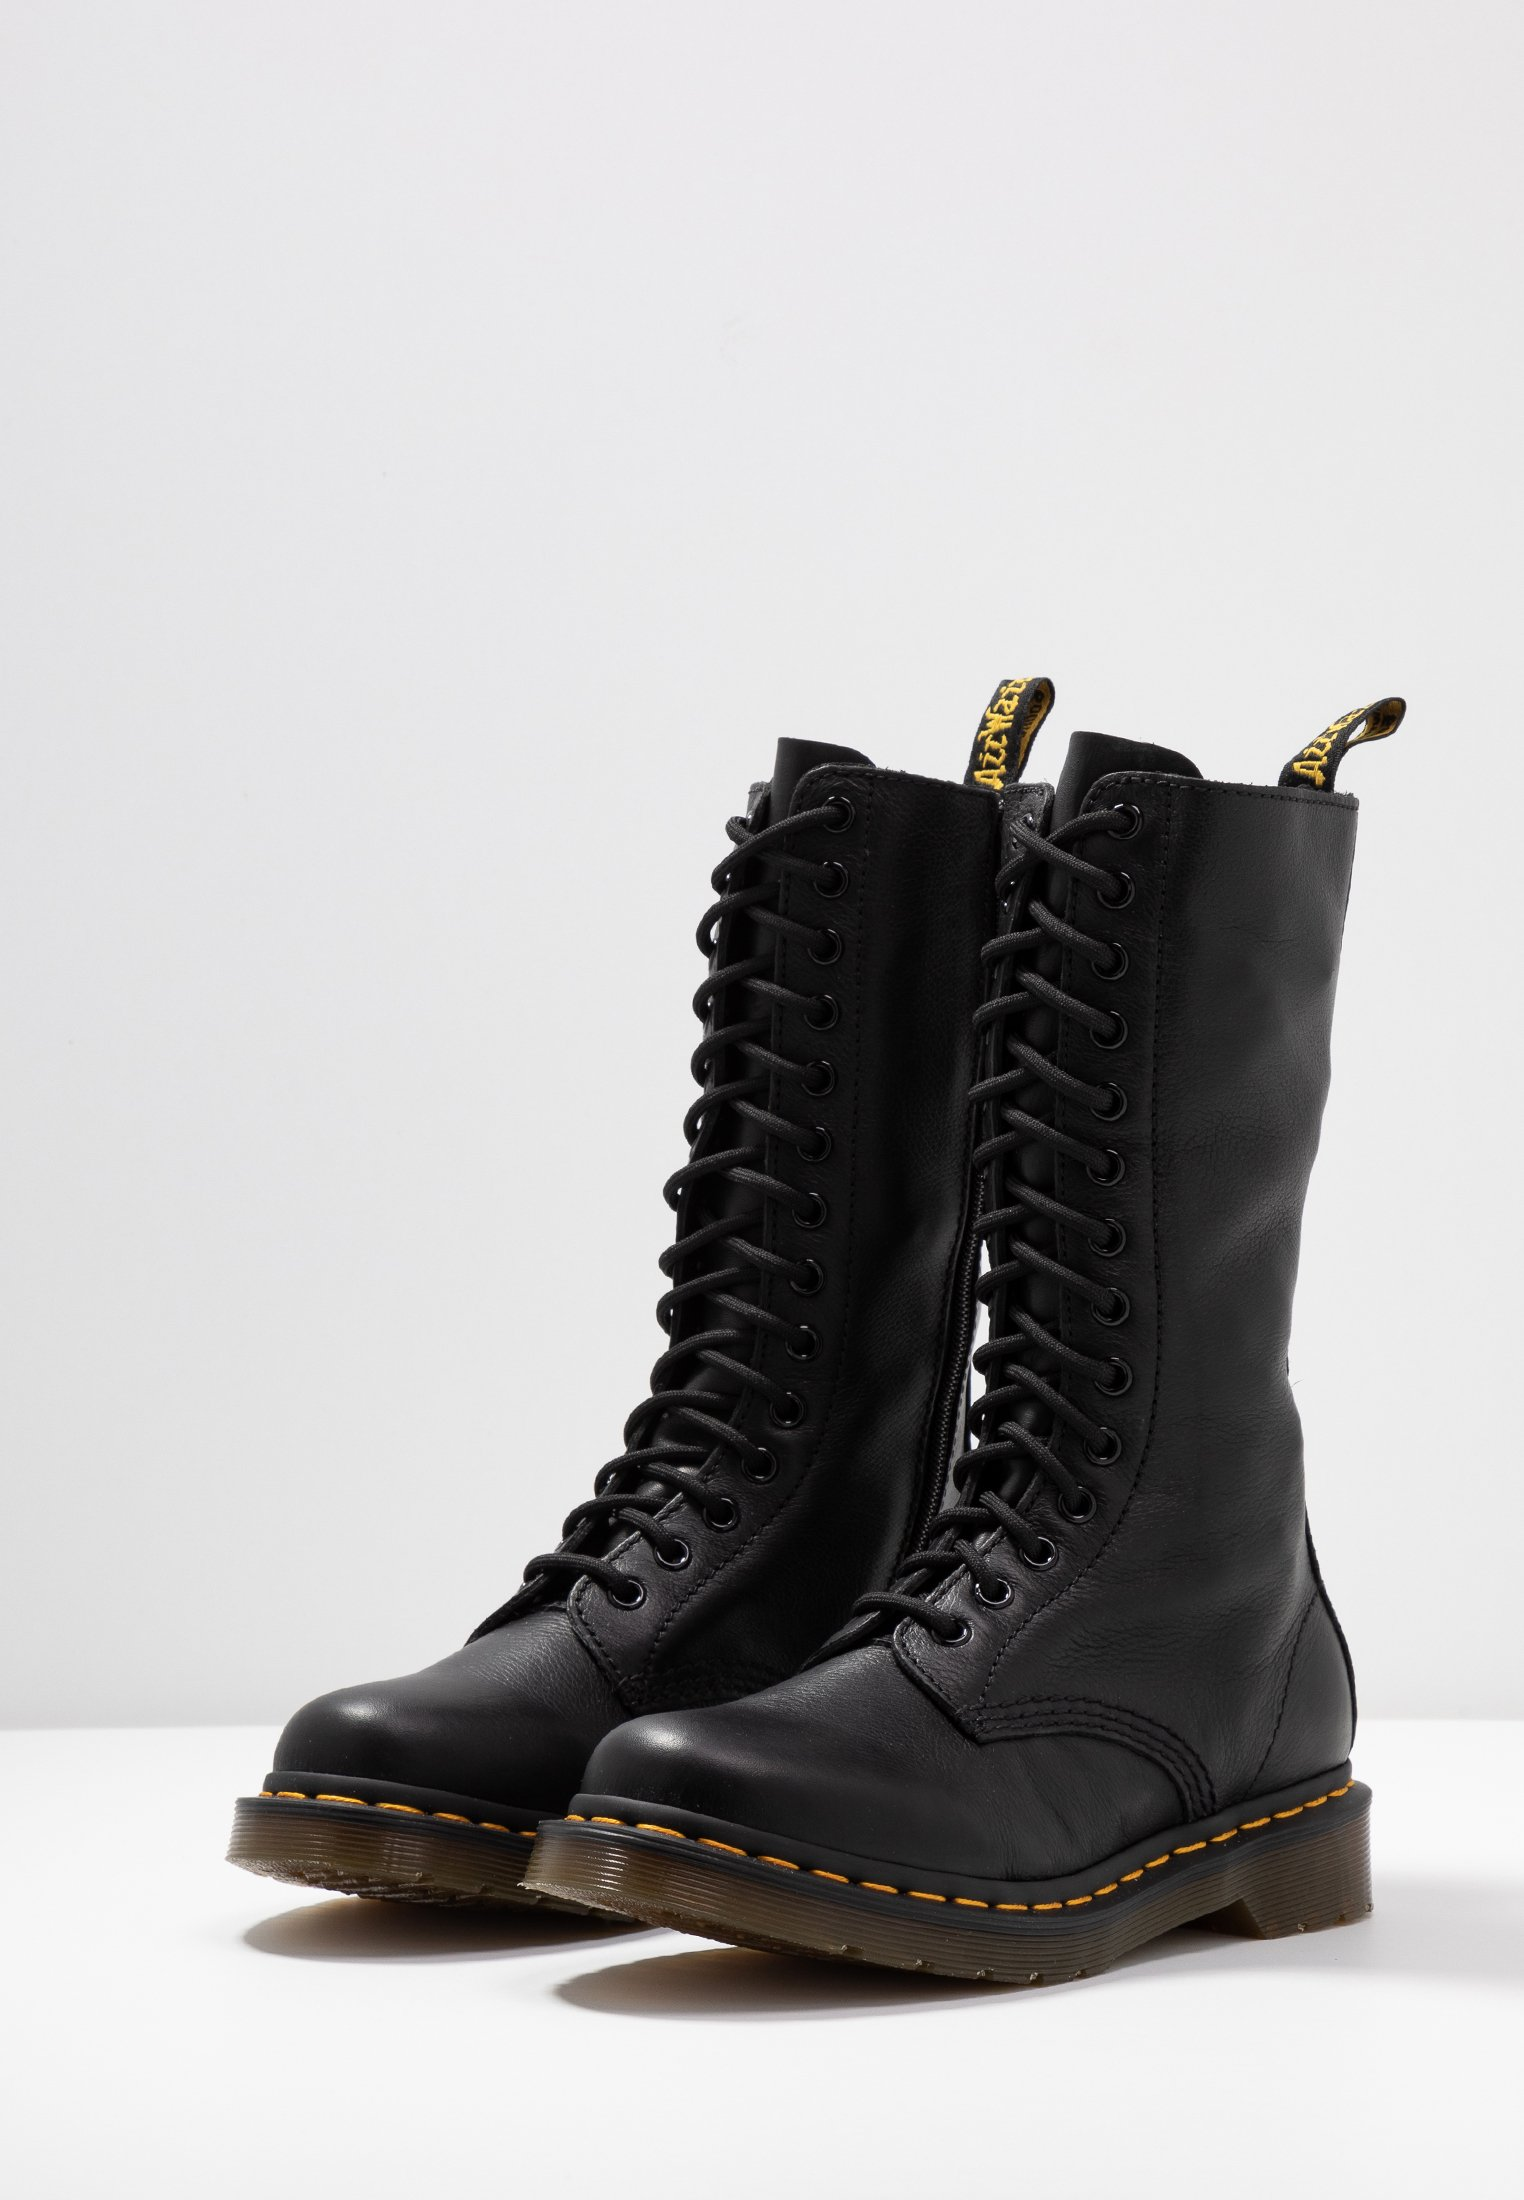 Women VIRGINIA - Lace-up boots - black